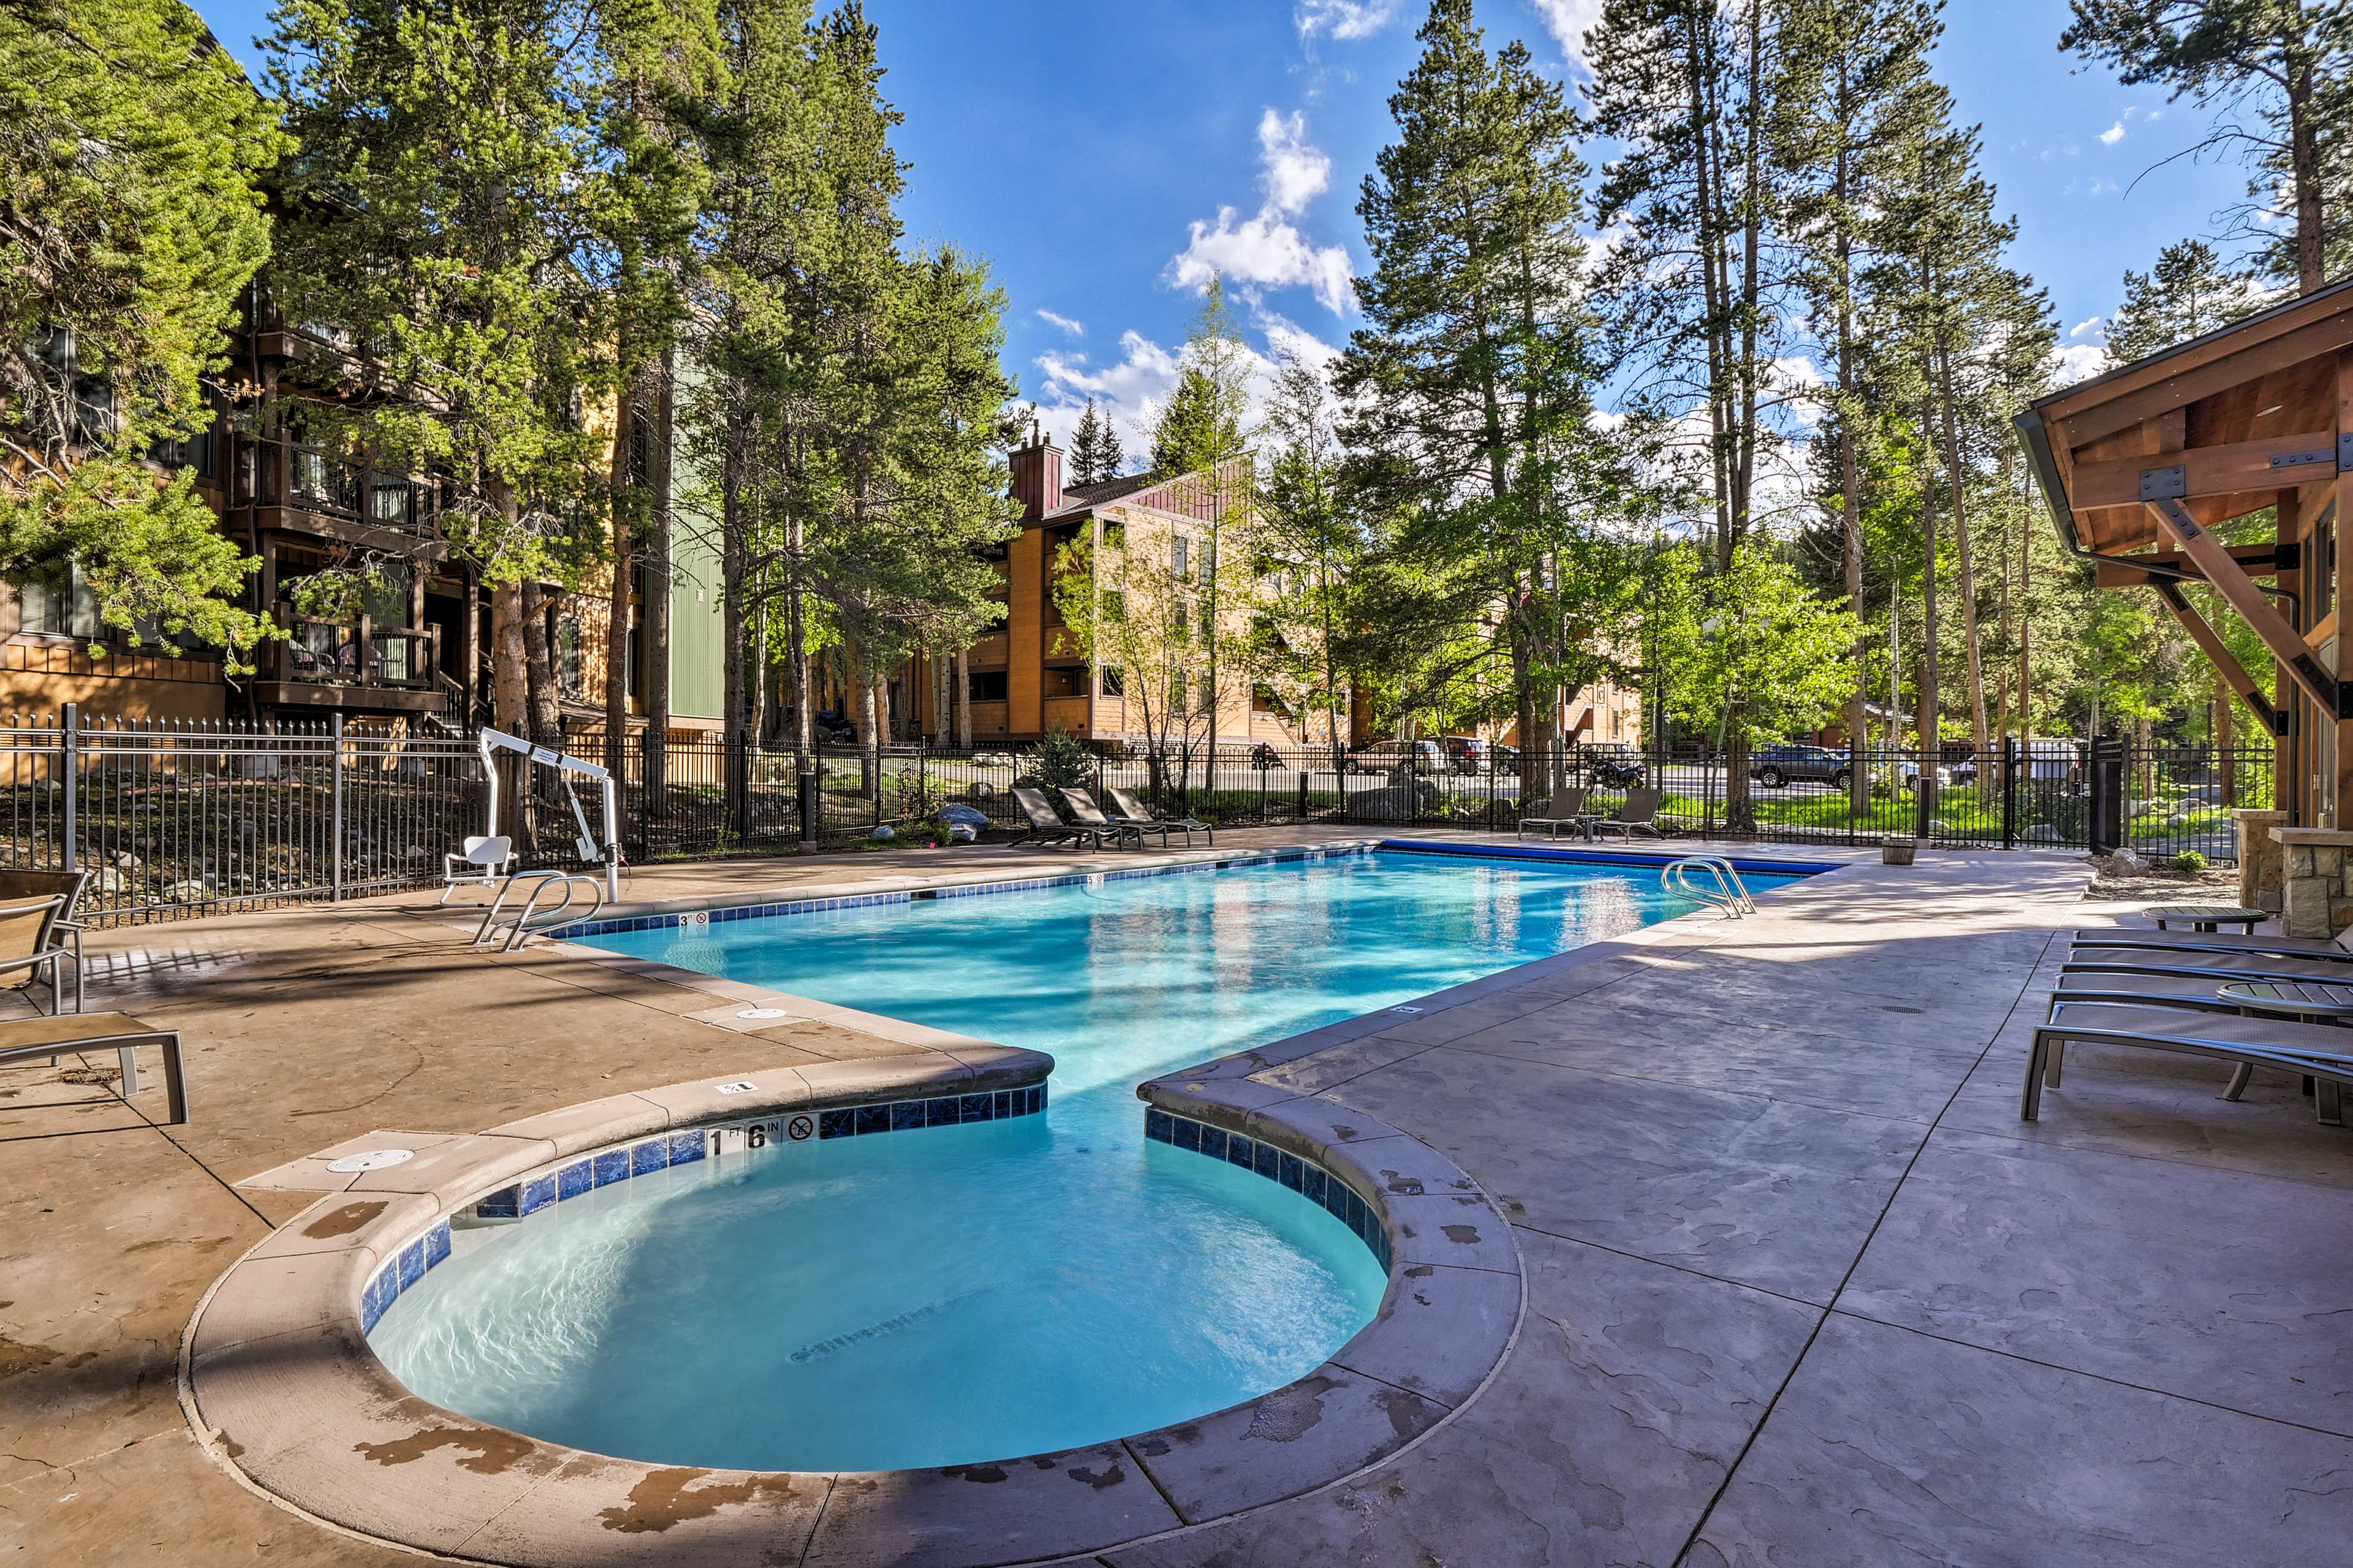 The community pool is just steps from the condo!